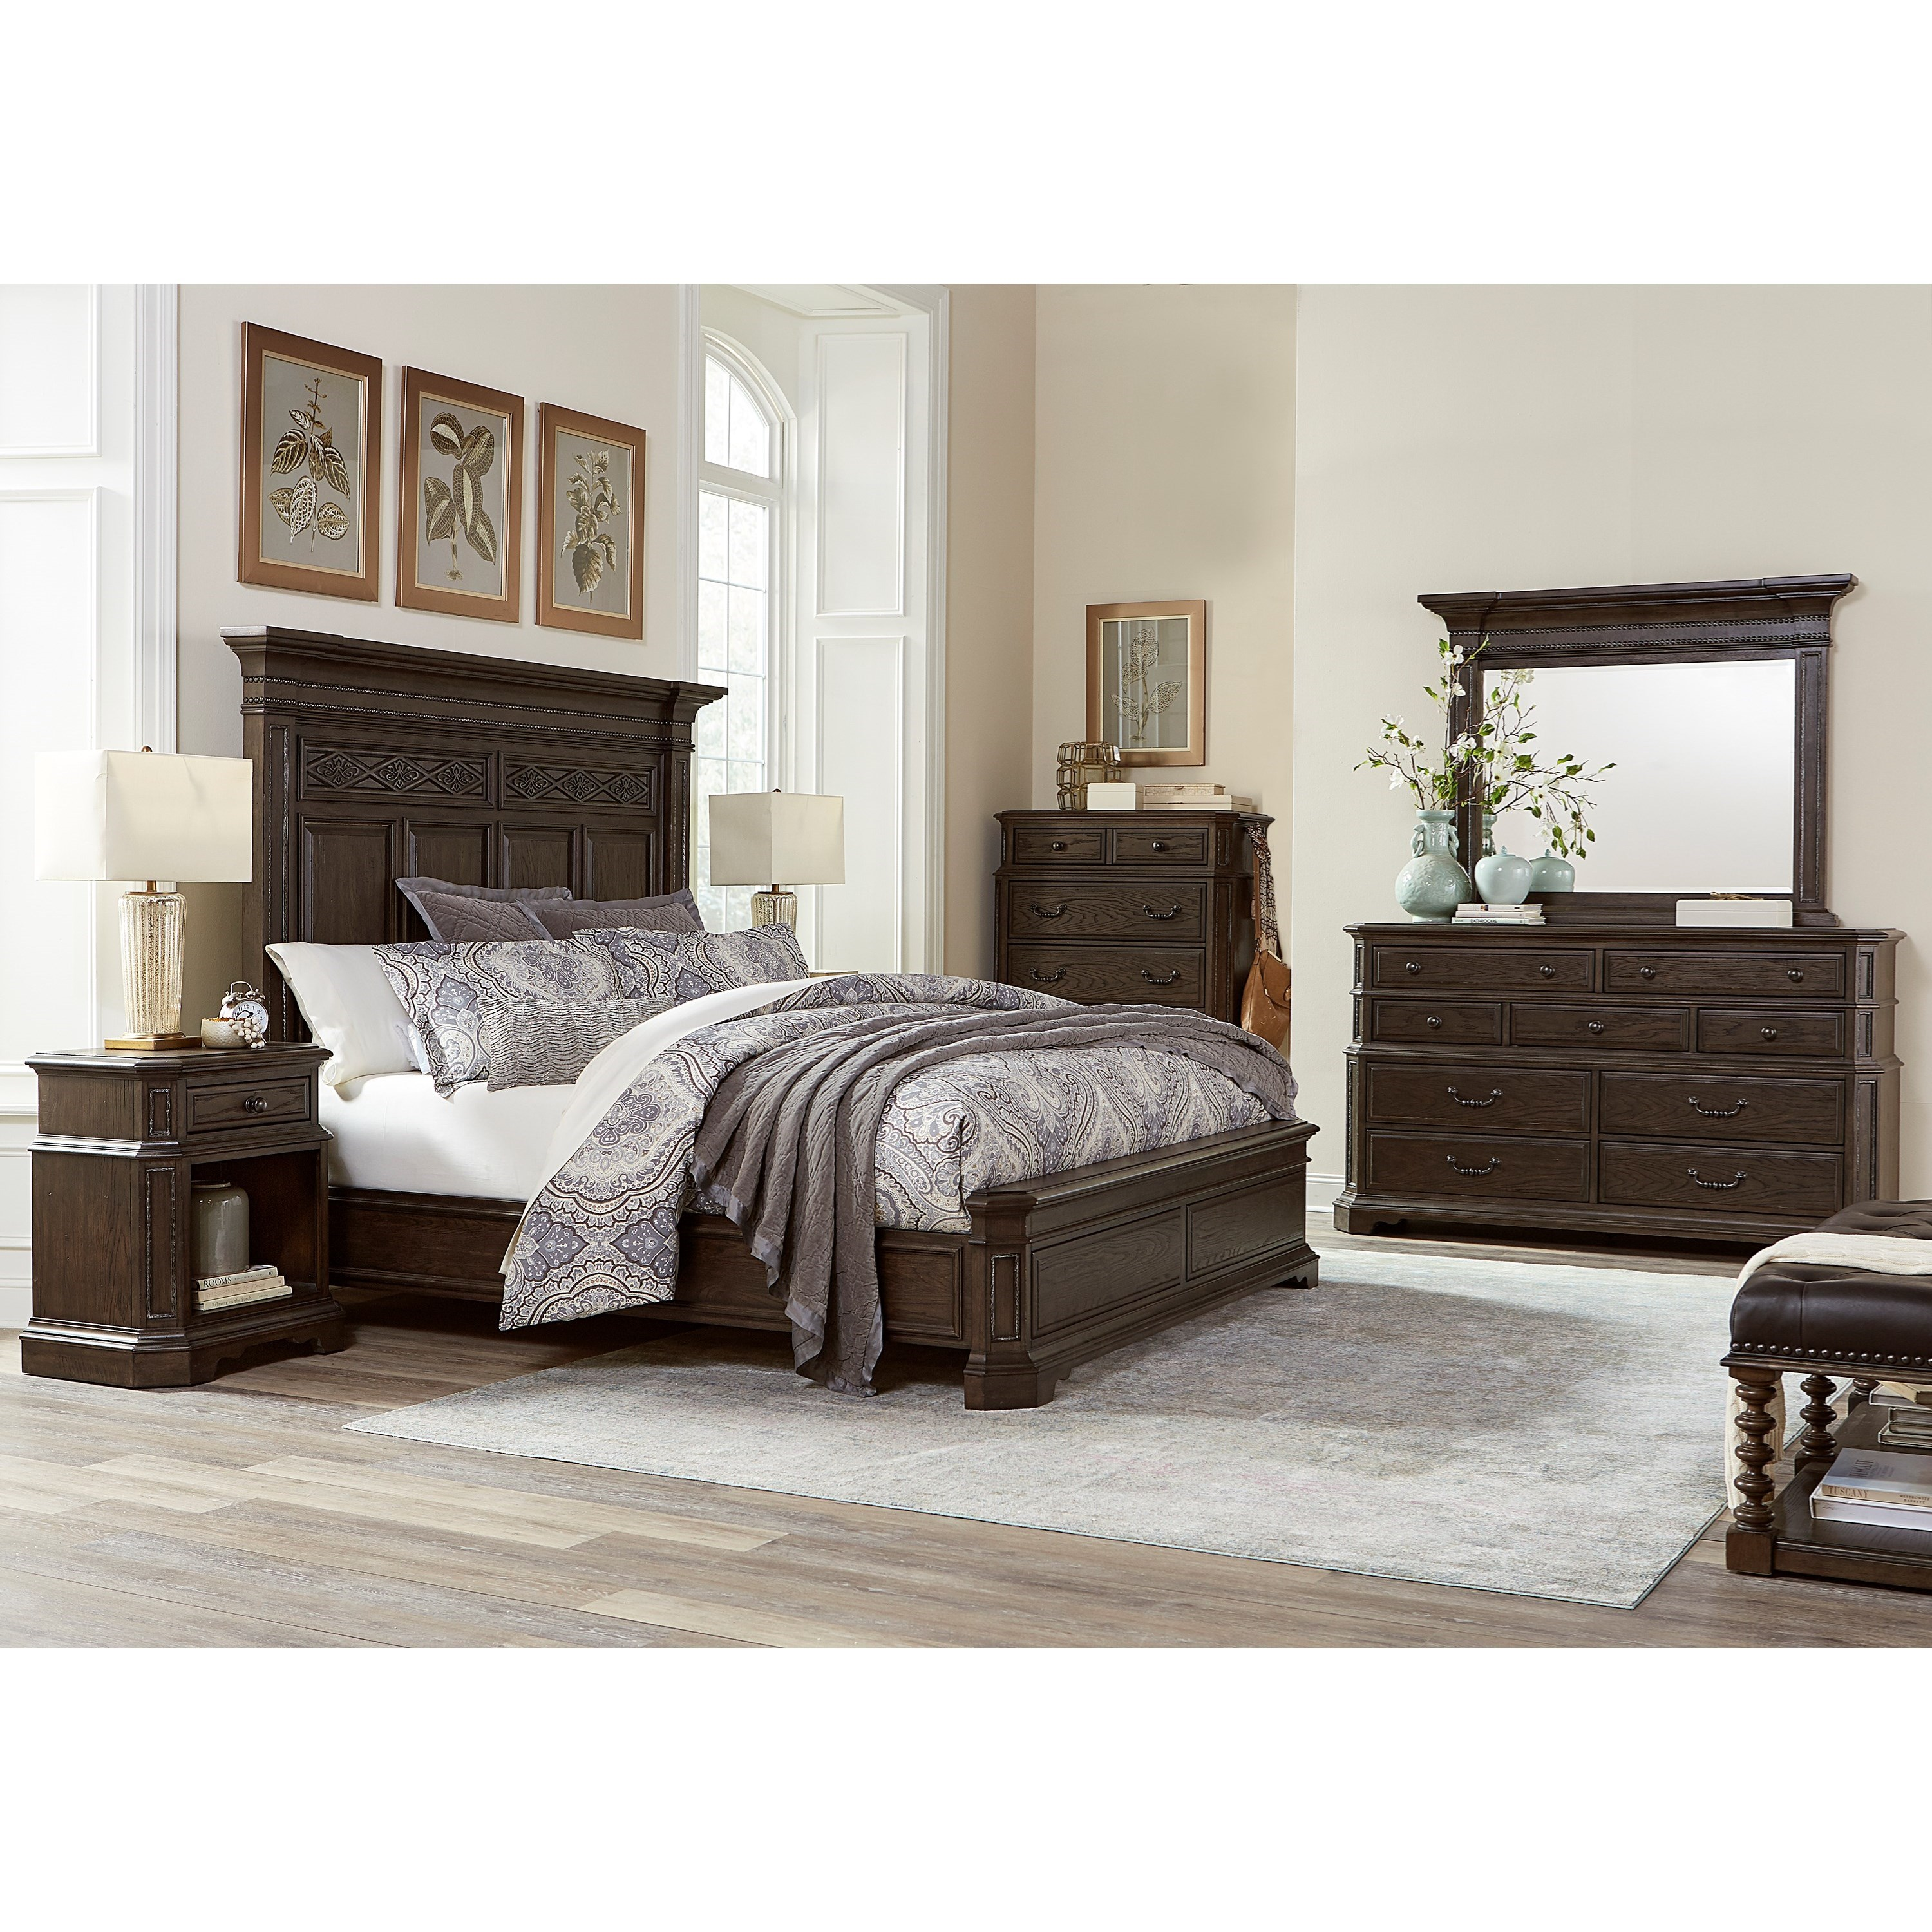 Foxhill King Bedroom Group by Aspenhome at Walker's Furniture